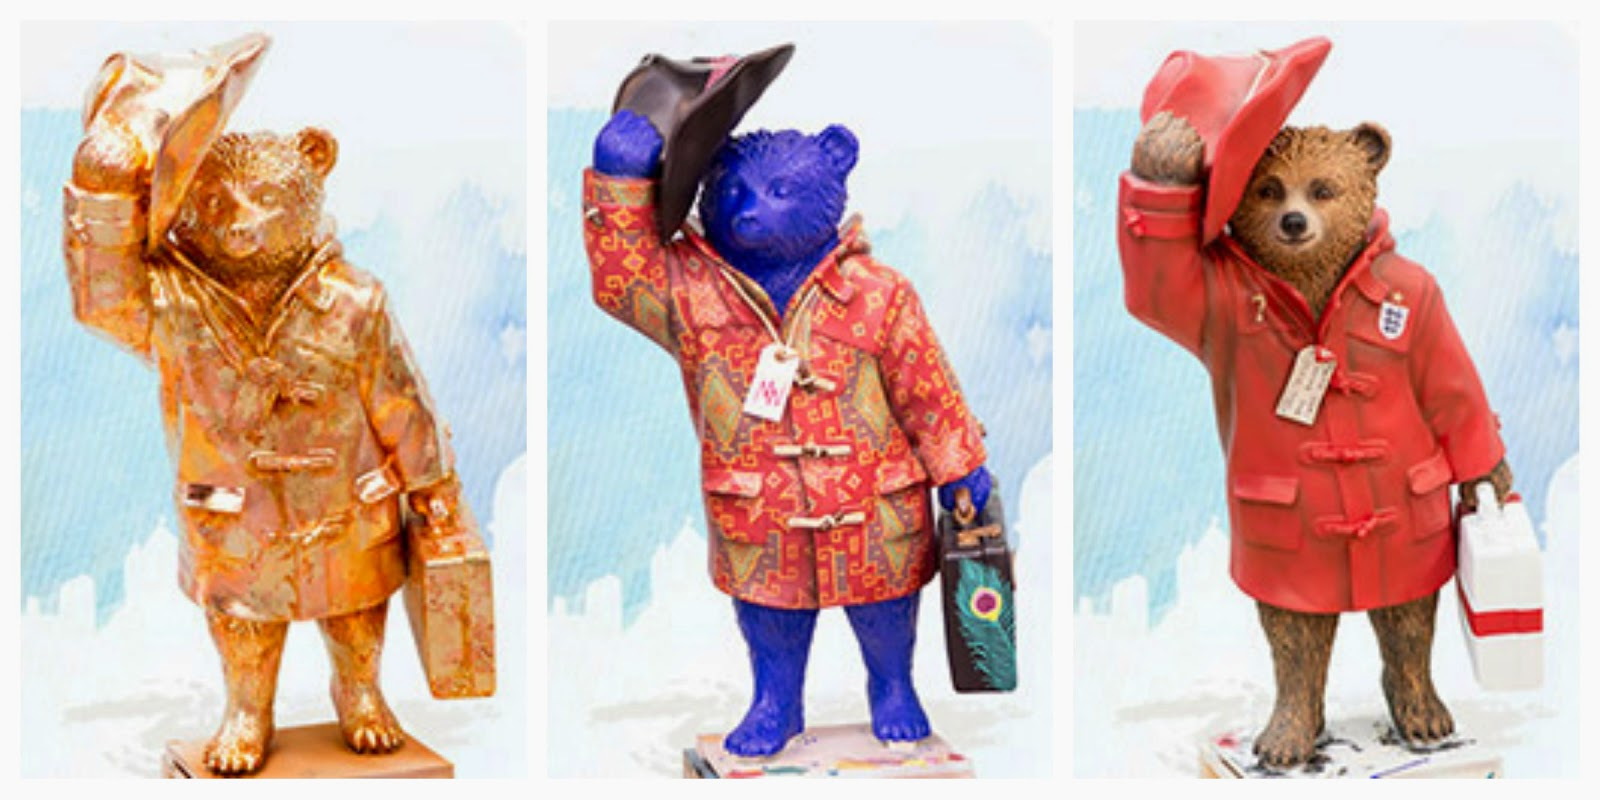 Get ready for the Paddington Bear take-over! | paddington | paddington bear | paddington movie | marks and spencer | mothercare | the paddington trial | london | paddington statin } mamasVIb | bear | duffle coat | wellingtons | classic kids books | classic books | michael bond | paddington statues around london | visit london | new movie | paddington bath products | paddington pyjamas | gifts | christmas gifts | movie for christmas | mamasvib